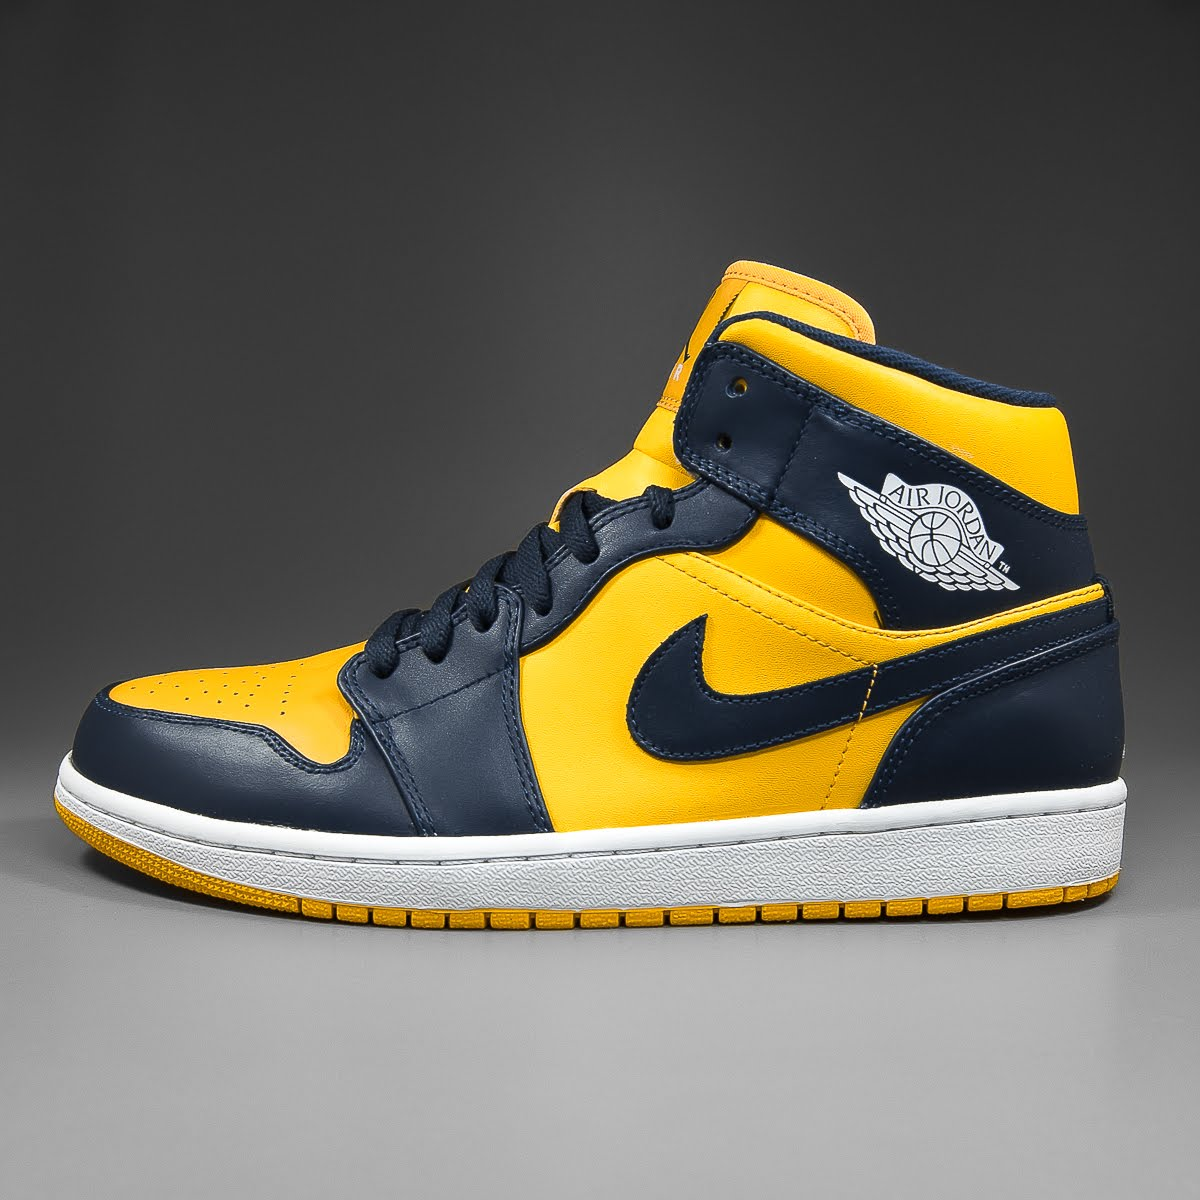 info for 46cf4 d28b7 Air Jordan 1 Mid - College Pack Michigan - varsity maize navy-white